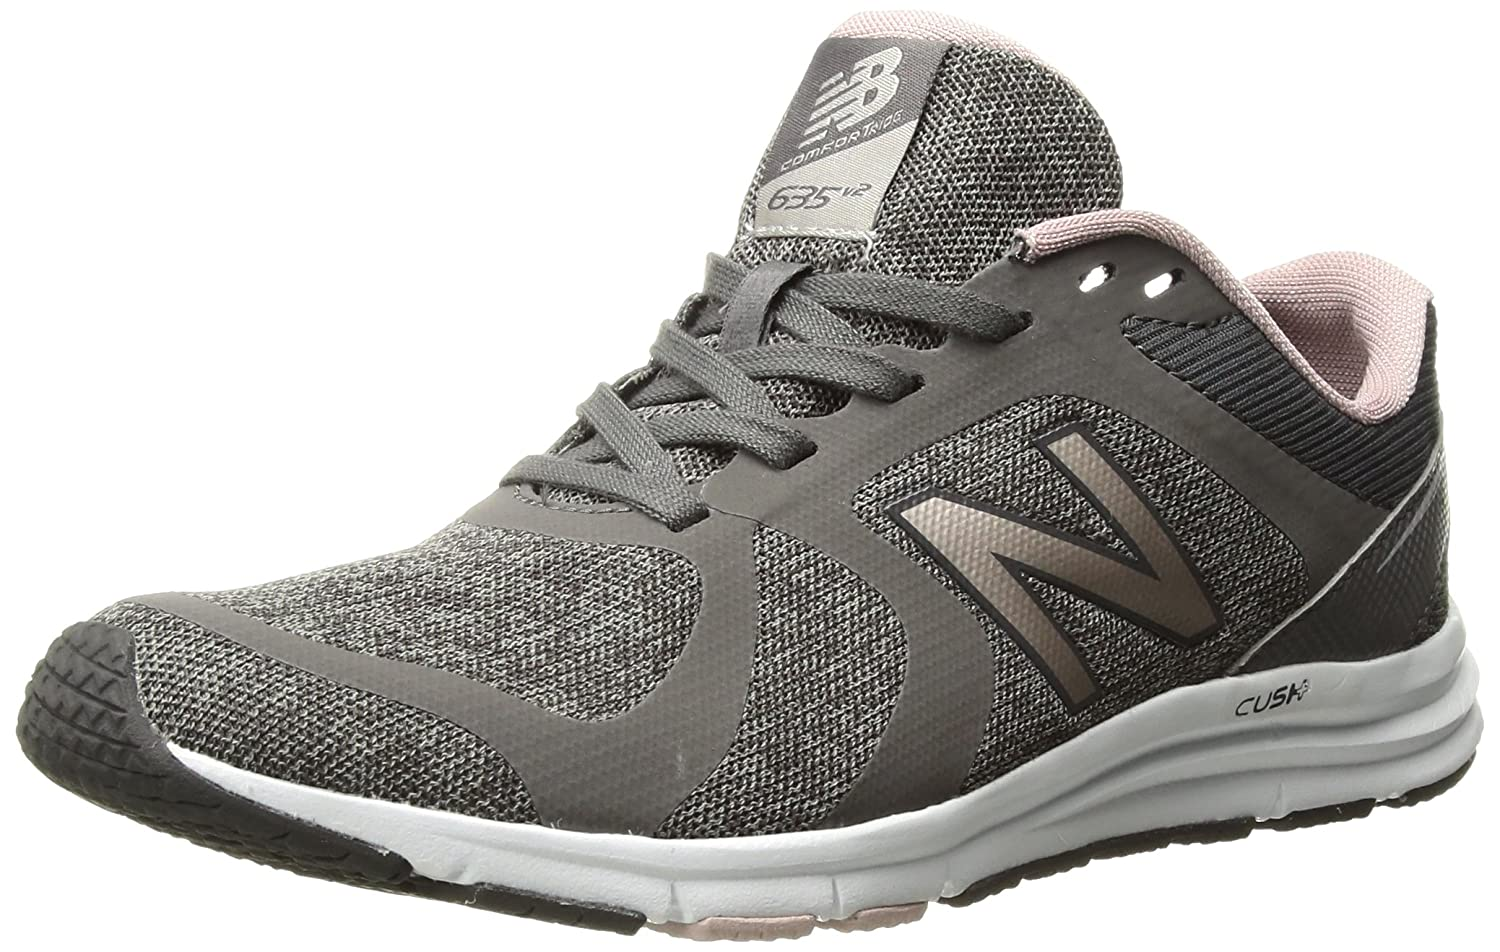 New Balance Women's 635v2 Cushioning B01MY1YAWD 12 D US|Grey